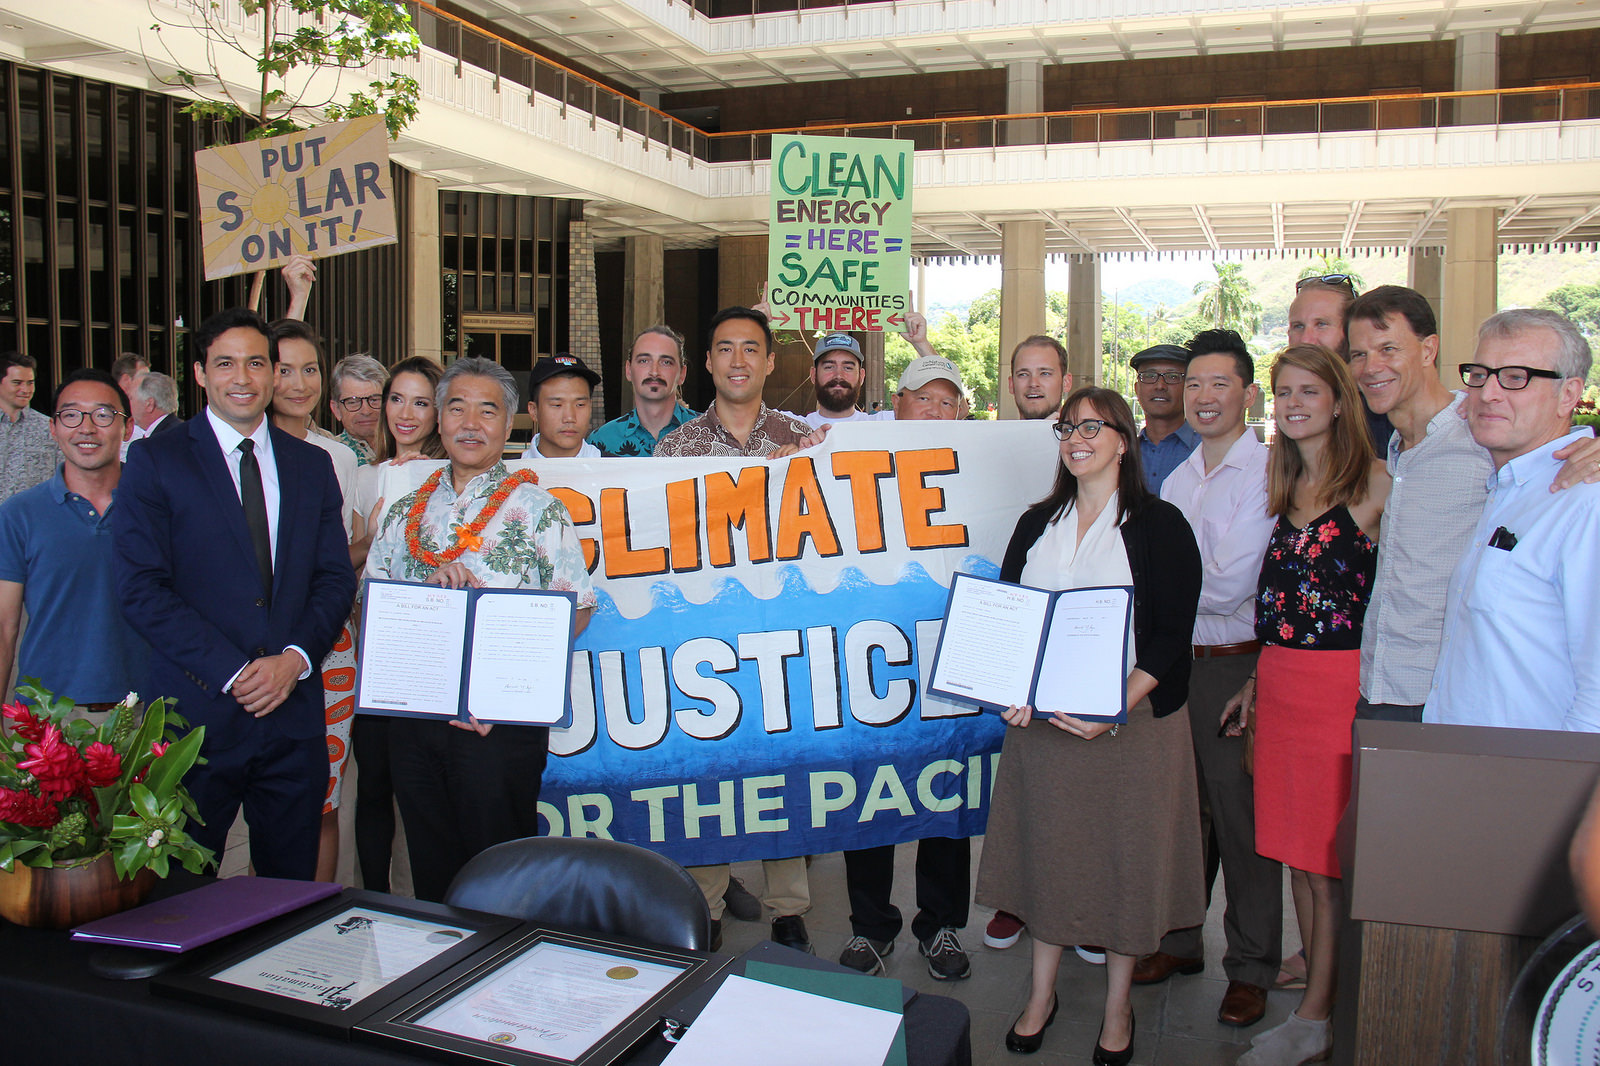 Hawaii enacts laws adopting Paris climate deal pledges